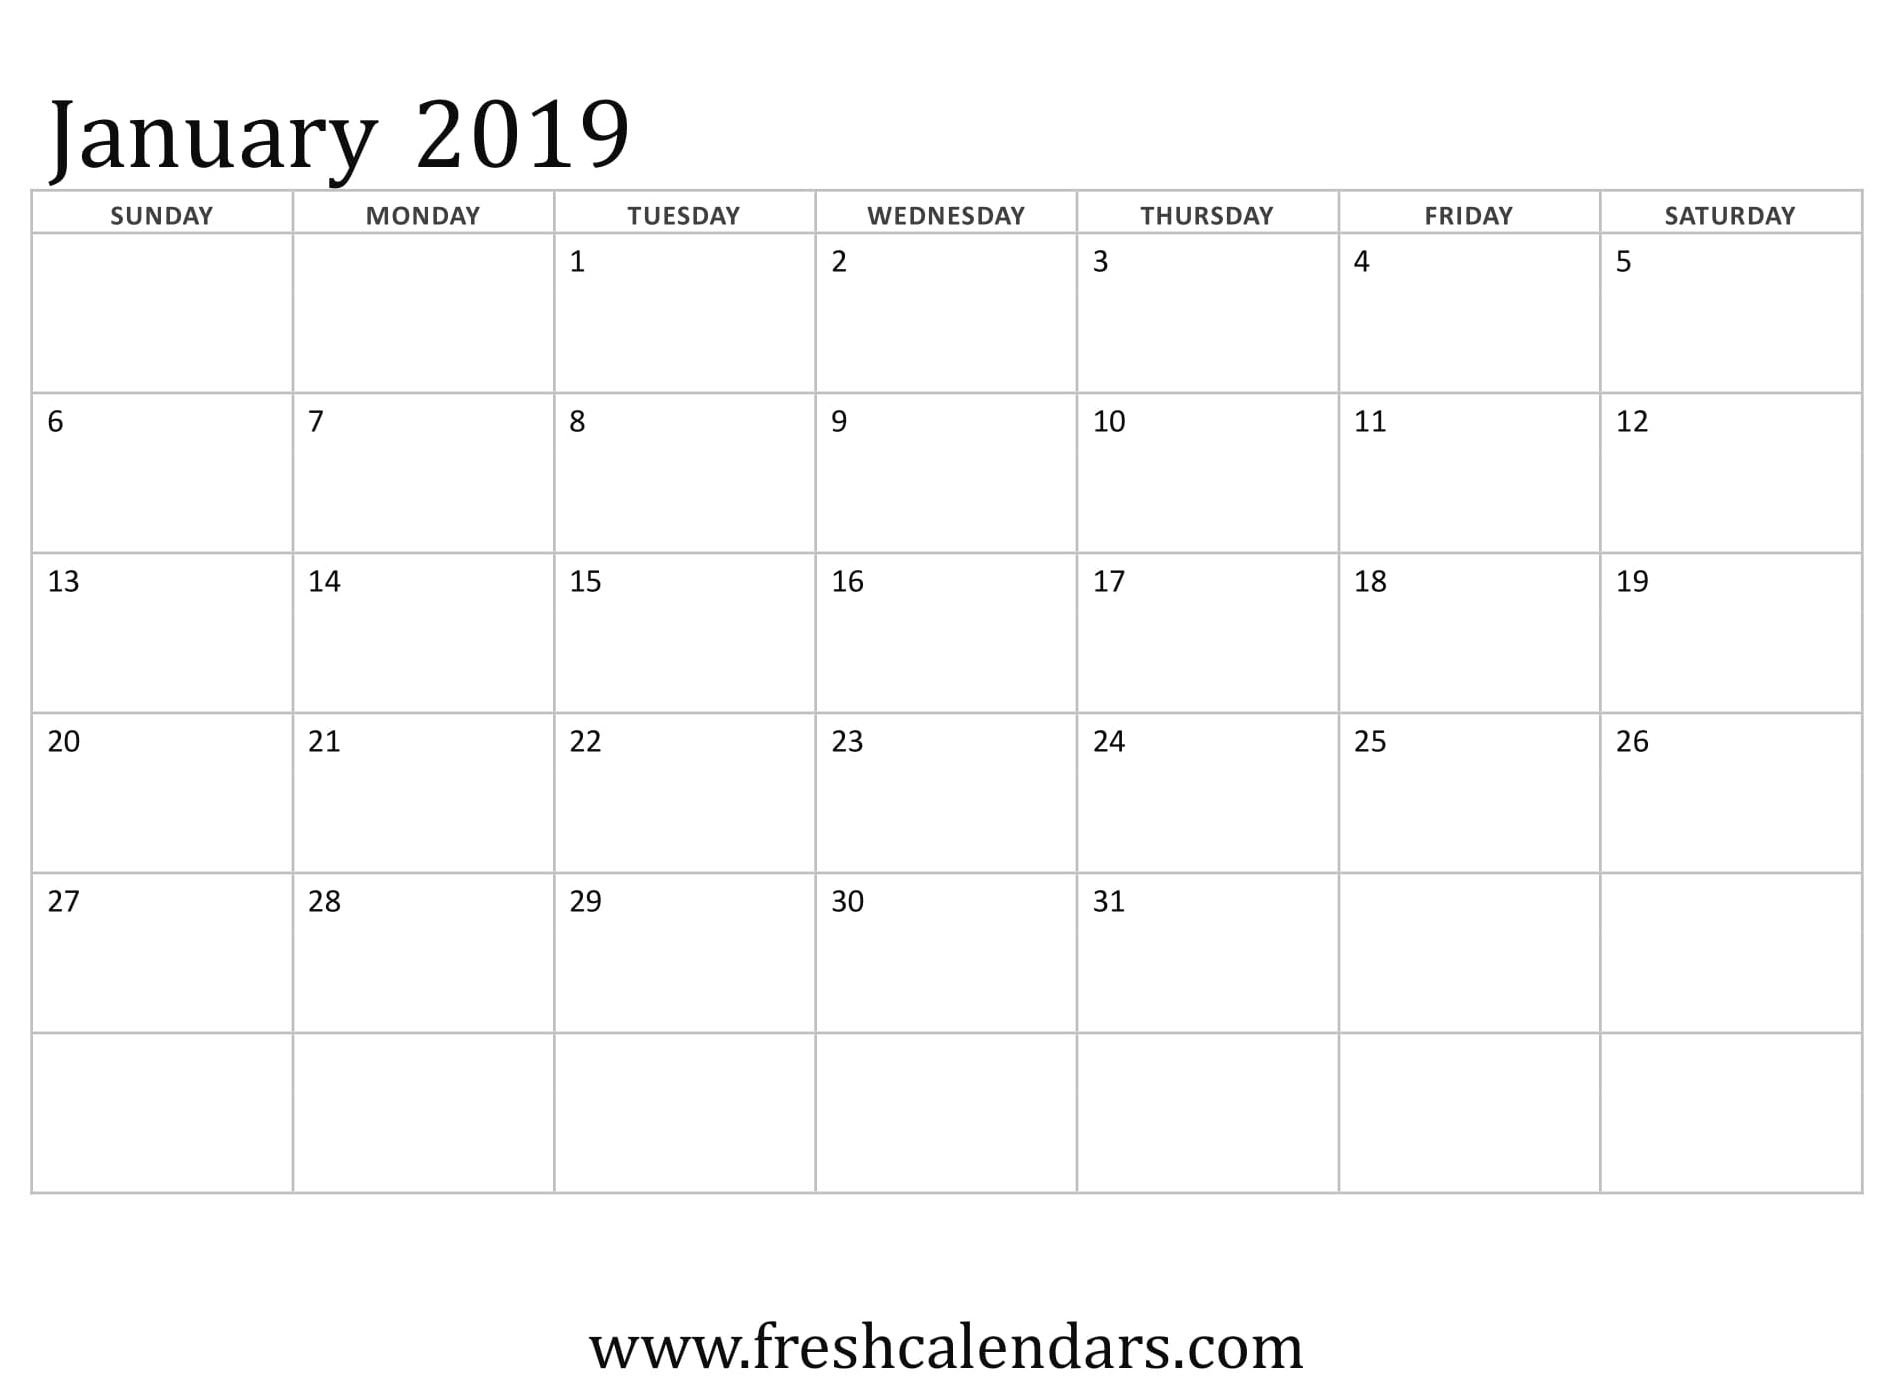 January 2019 Printable Calendars - Fresh Calendars Calendar 2019 11X17